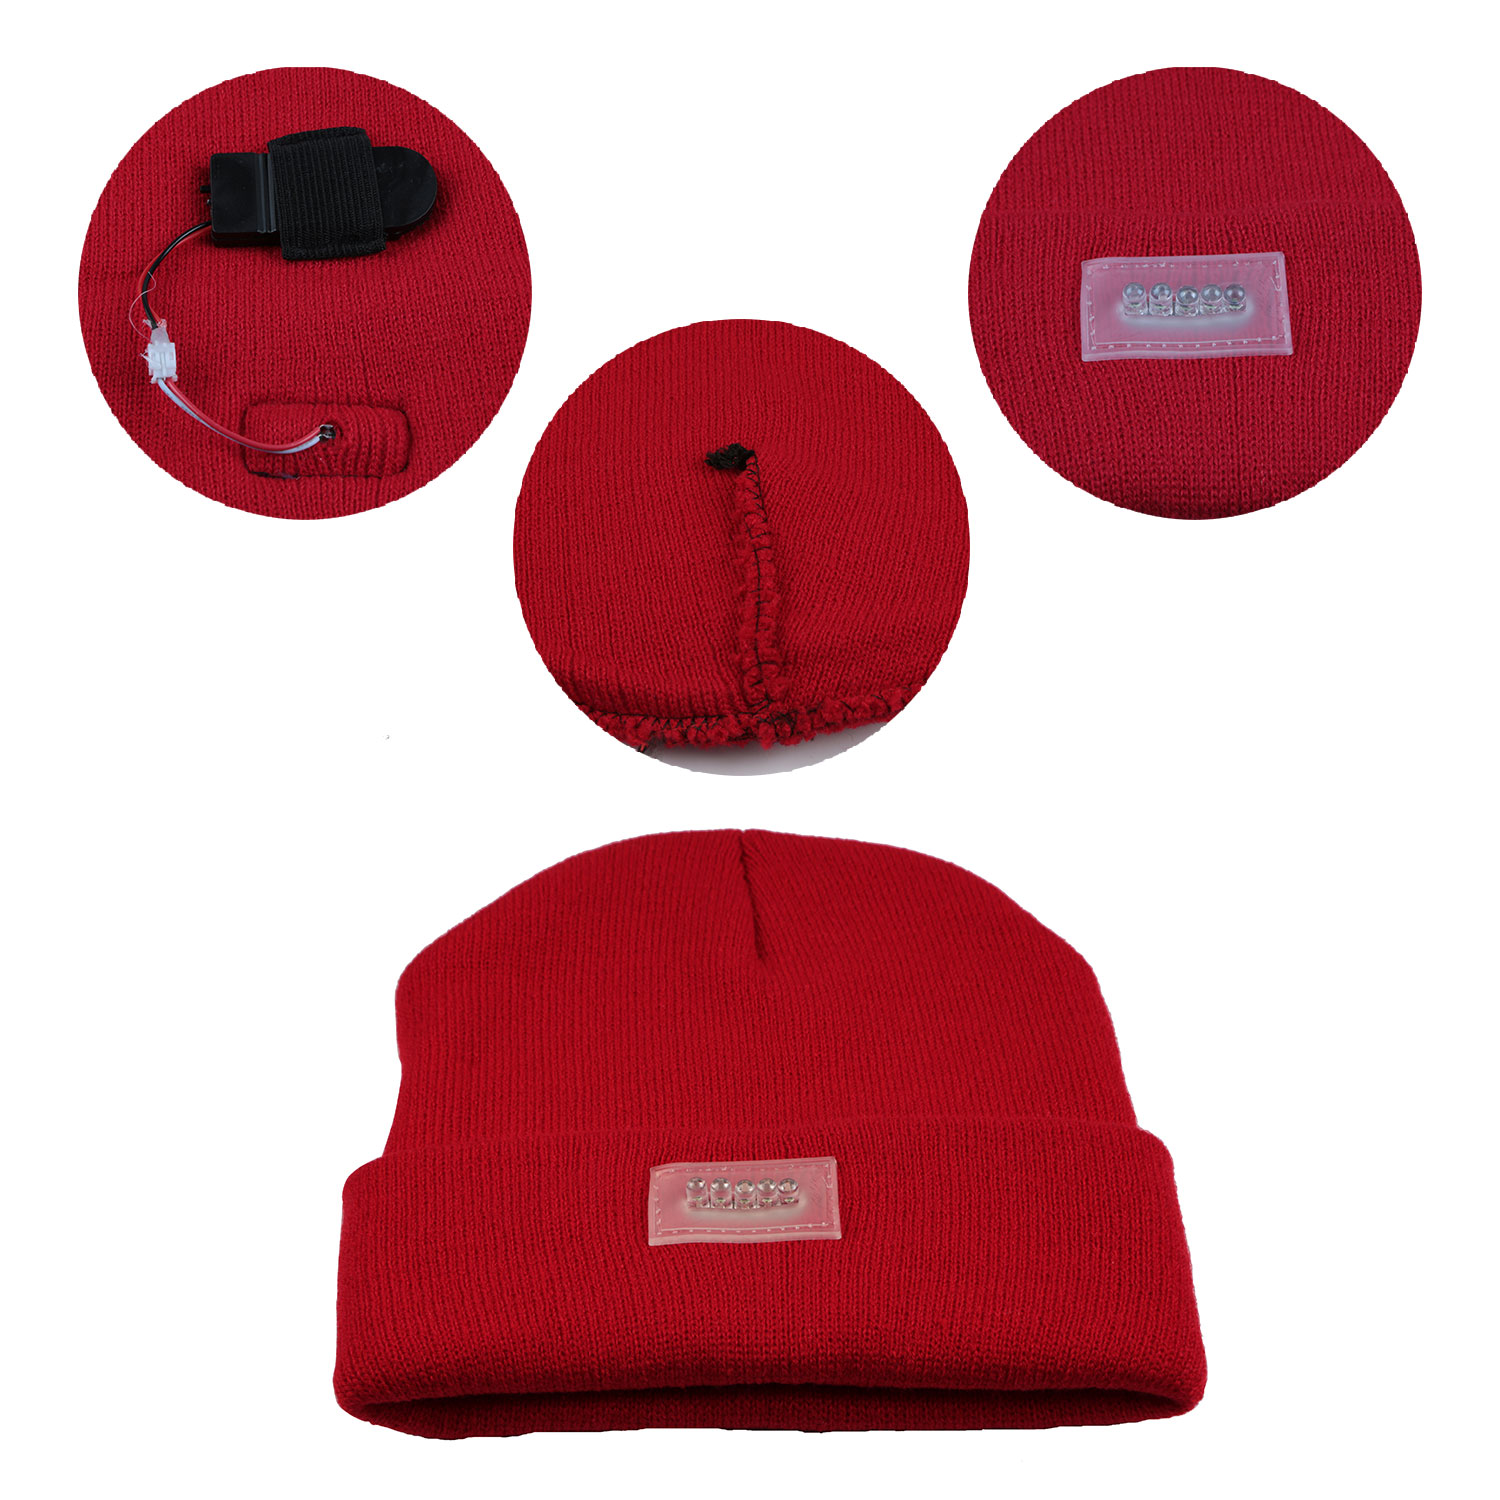 e86daed793a Fashion LED Flashlight Hands Free Knitted Beanie Cap Camping Sports Running  Hat